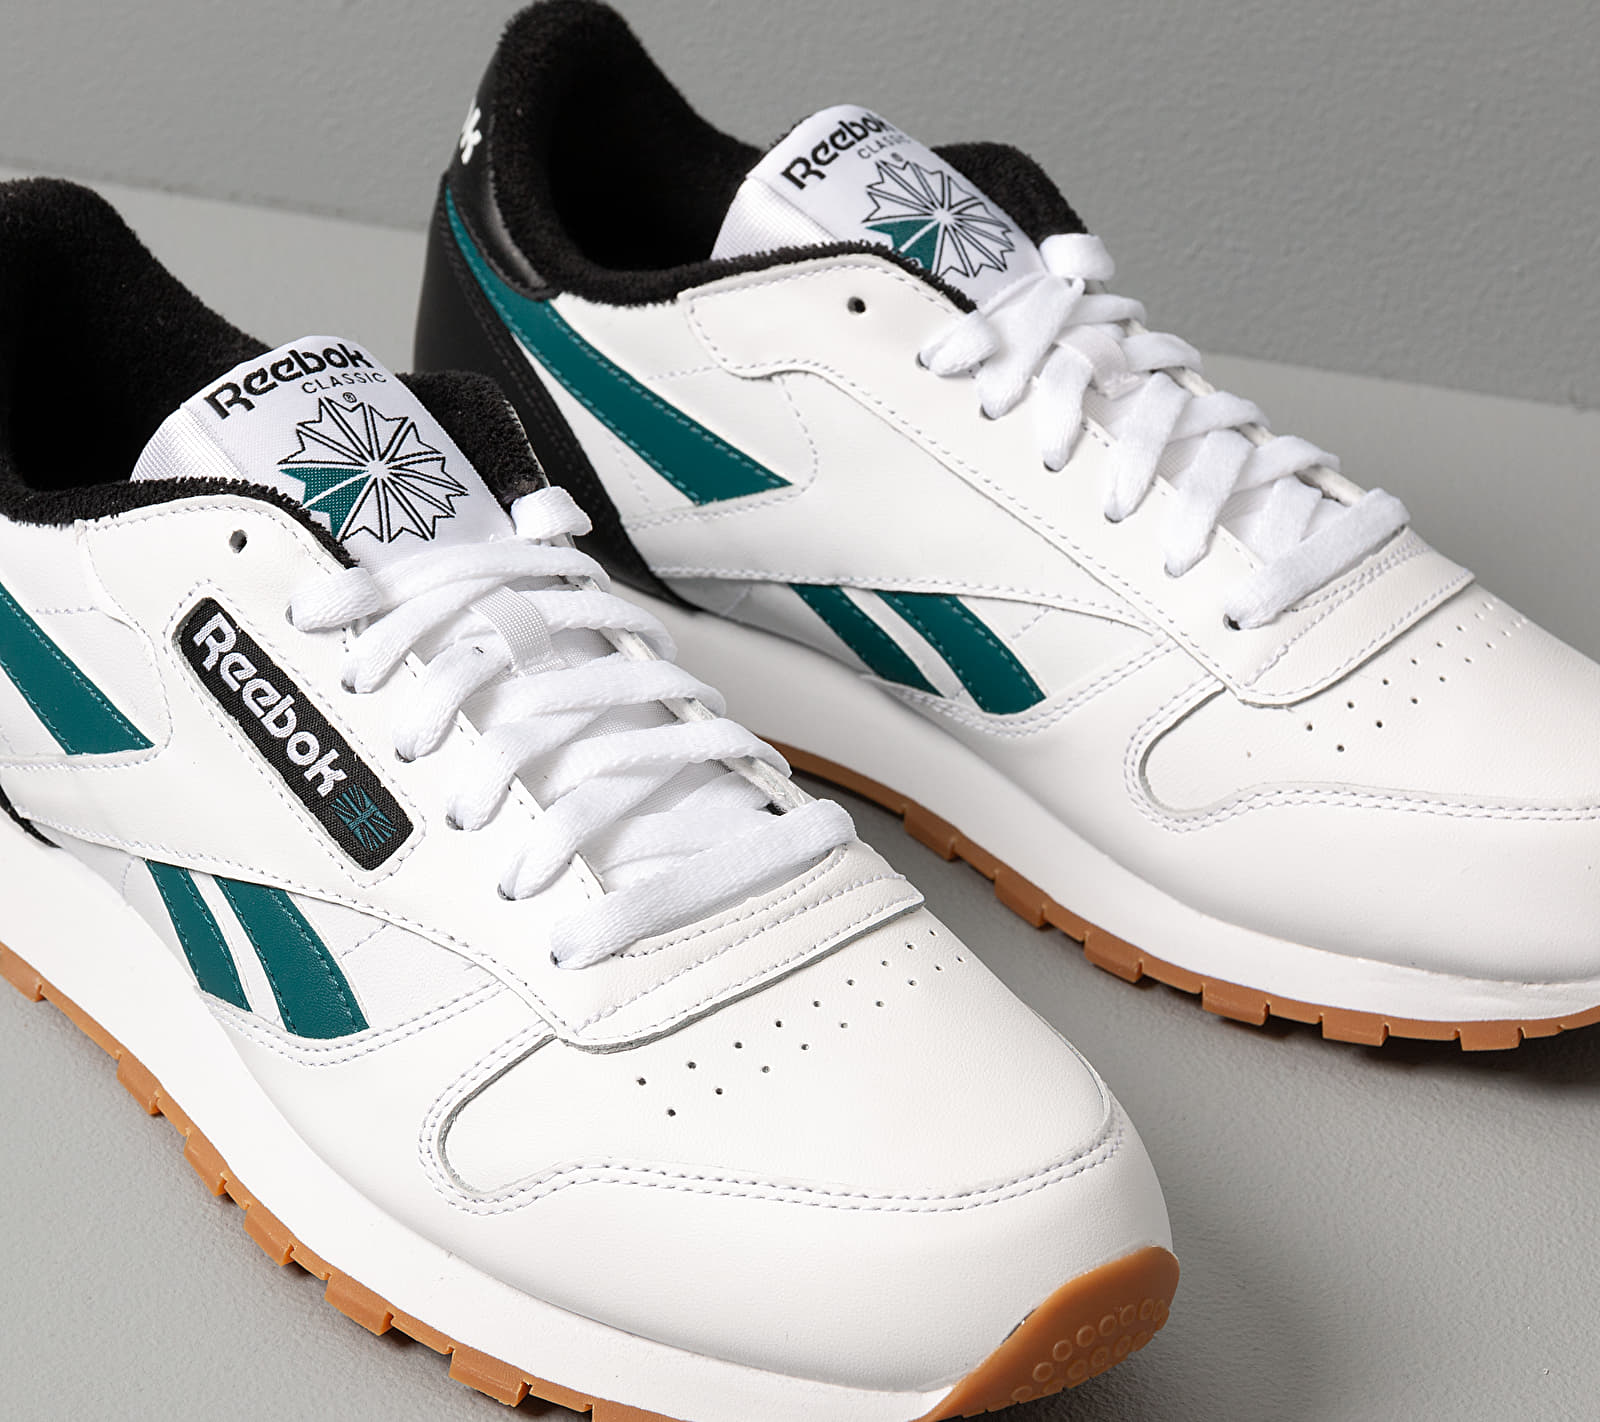 Reebok Classic Leather MU White/ Black/ Heritage Teal